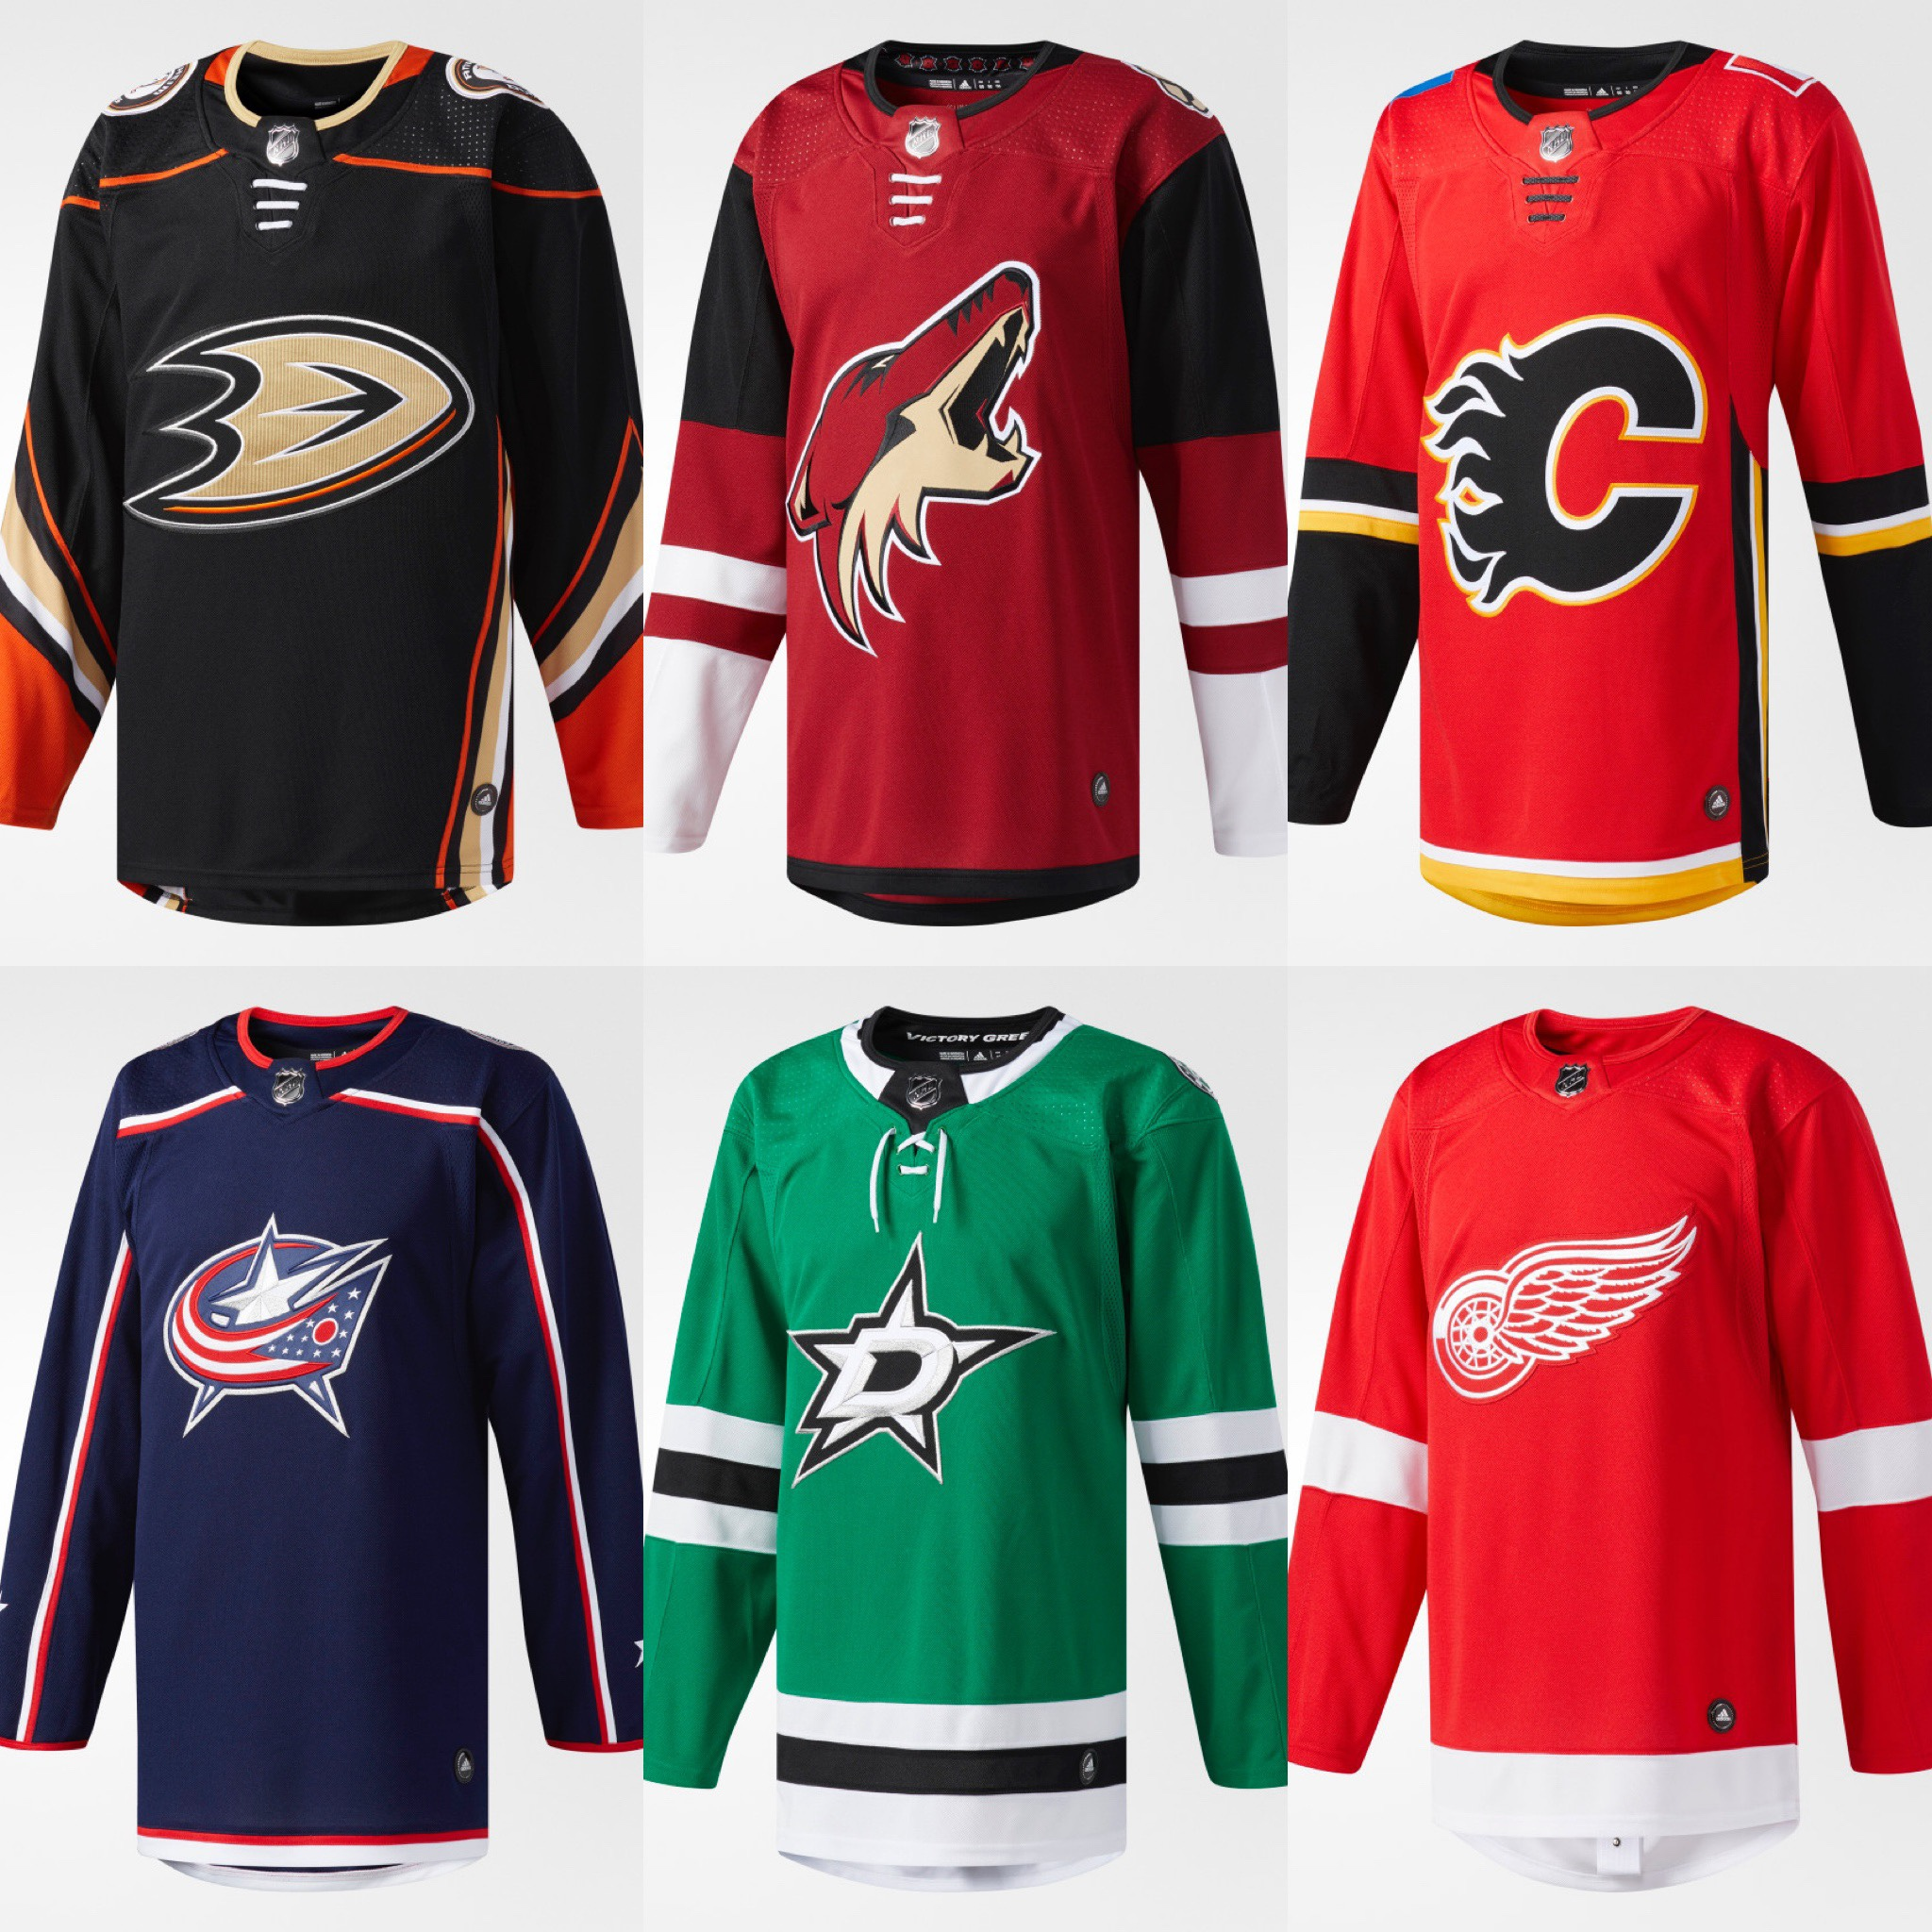 the best attitude 12530 7813f 60% OFF AUTHENTIC ADIDAS NHL JERSEYS — STEALS